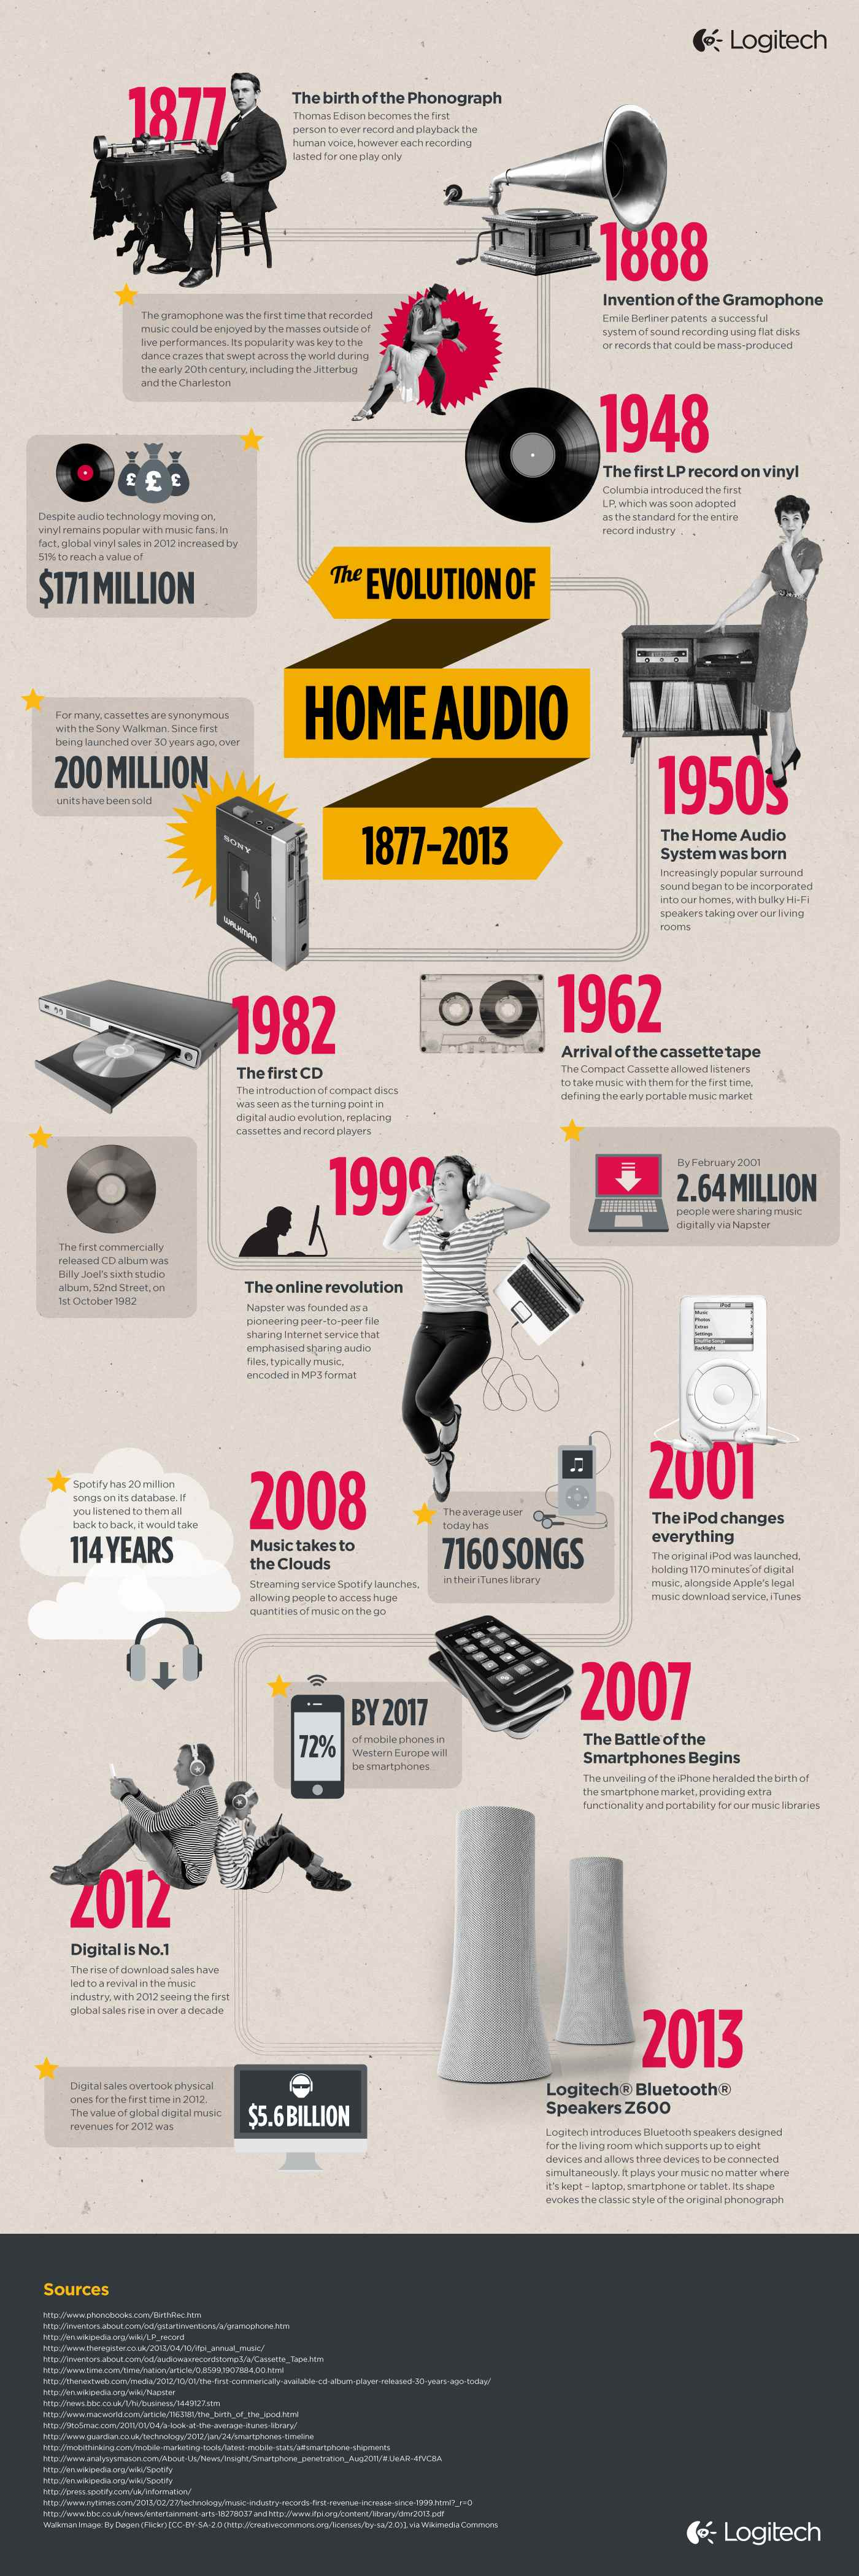 Evolution of Home Audio Infographic